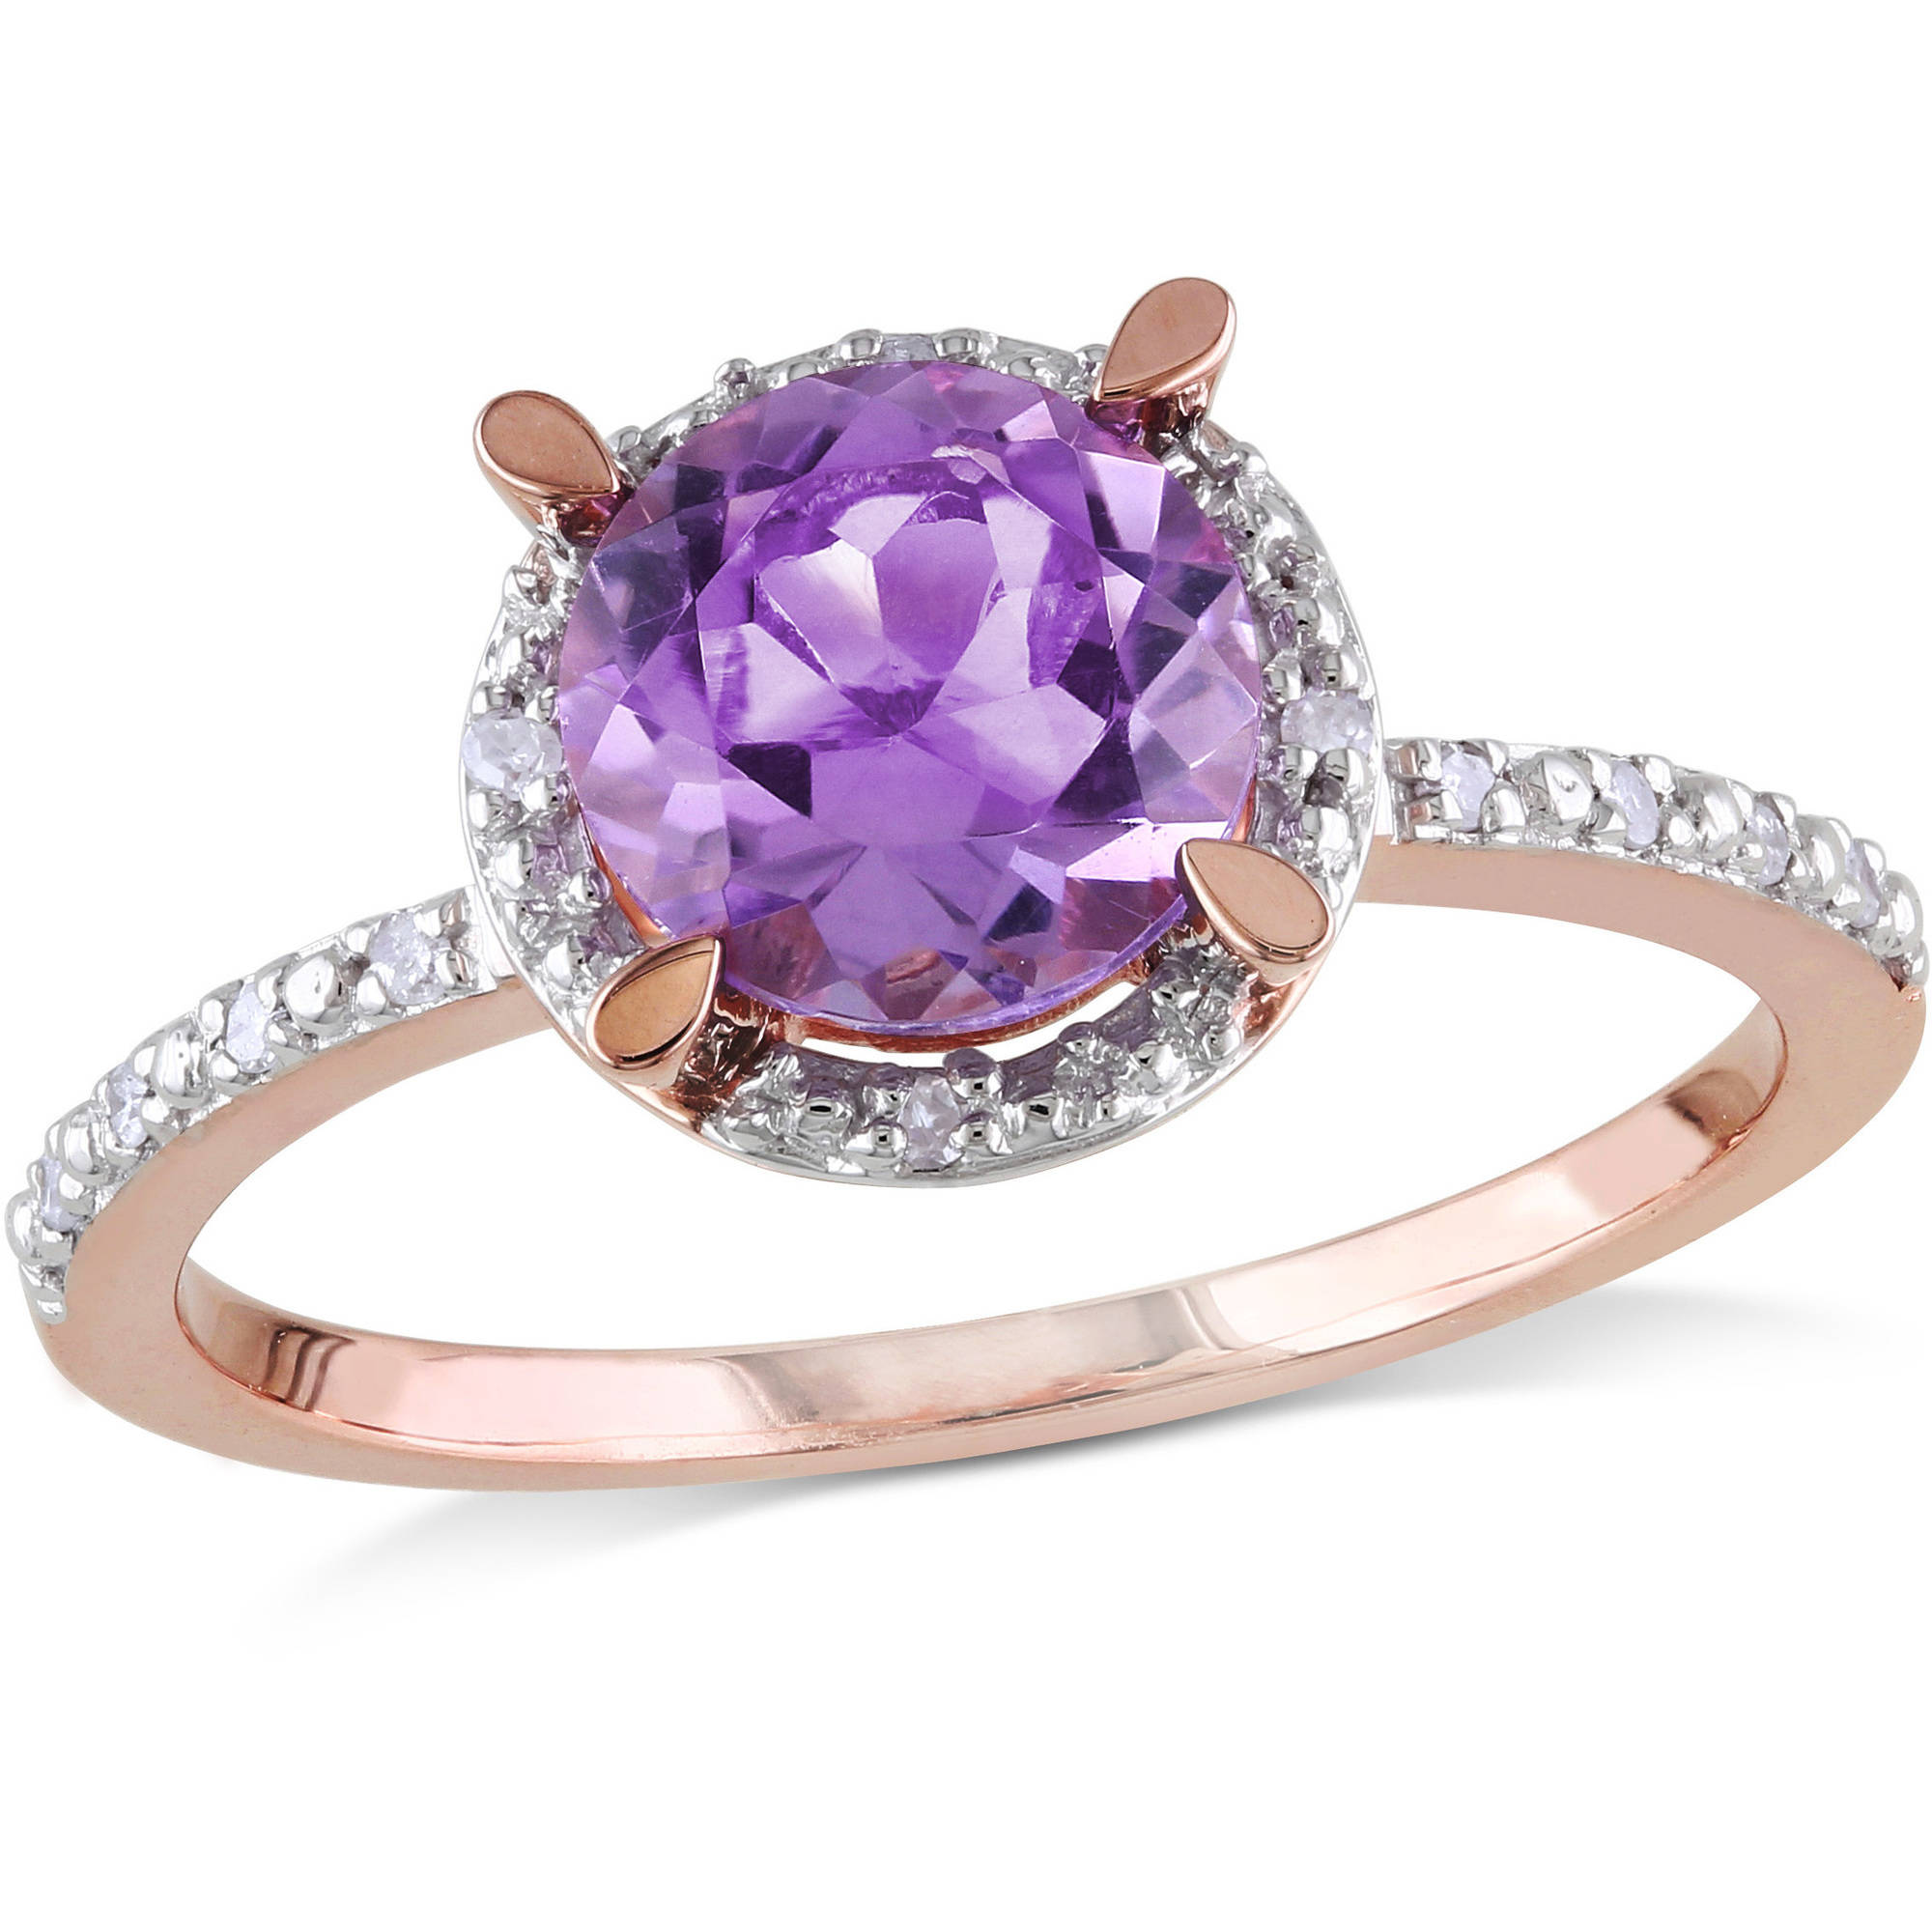 1-1 3 Carat T.G.W. Amethyst and Diamond-Accent 10kt Pink Gold Halo Ring by Generic